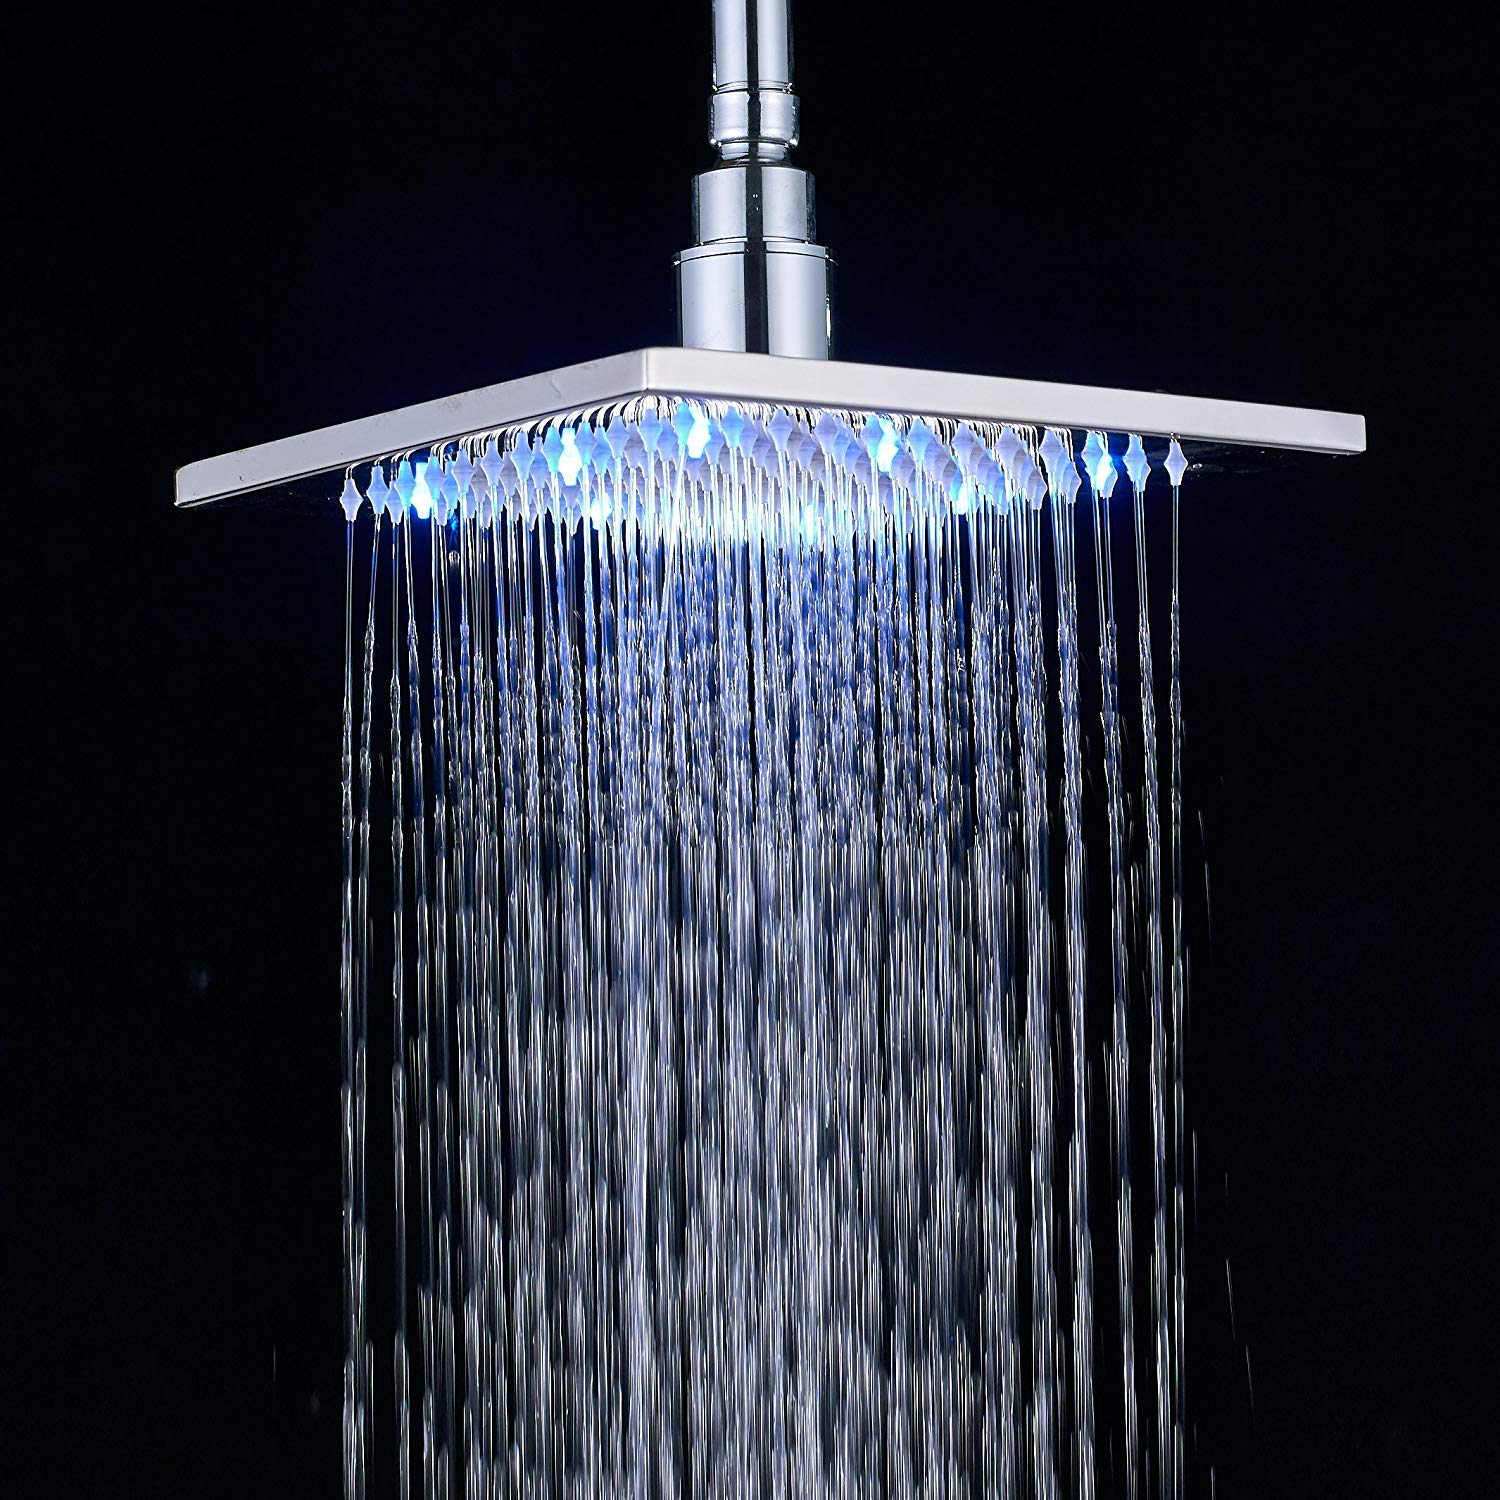 Votamuta Polished Chrome Finish 16-Inch LED Square Rain Shower Head Wall Mounted,Ceiling Mounted Top Shower Sprayer